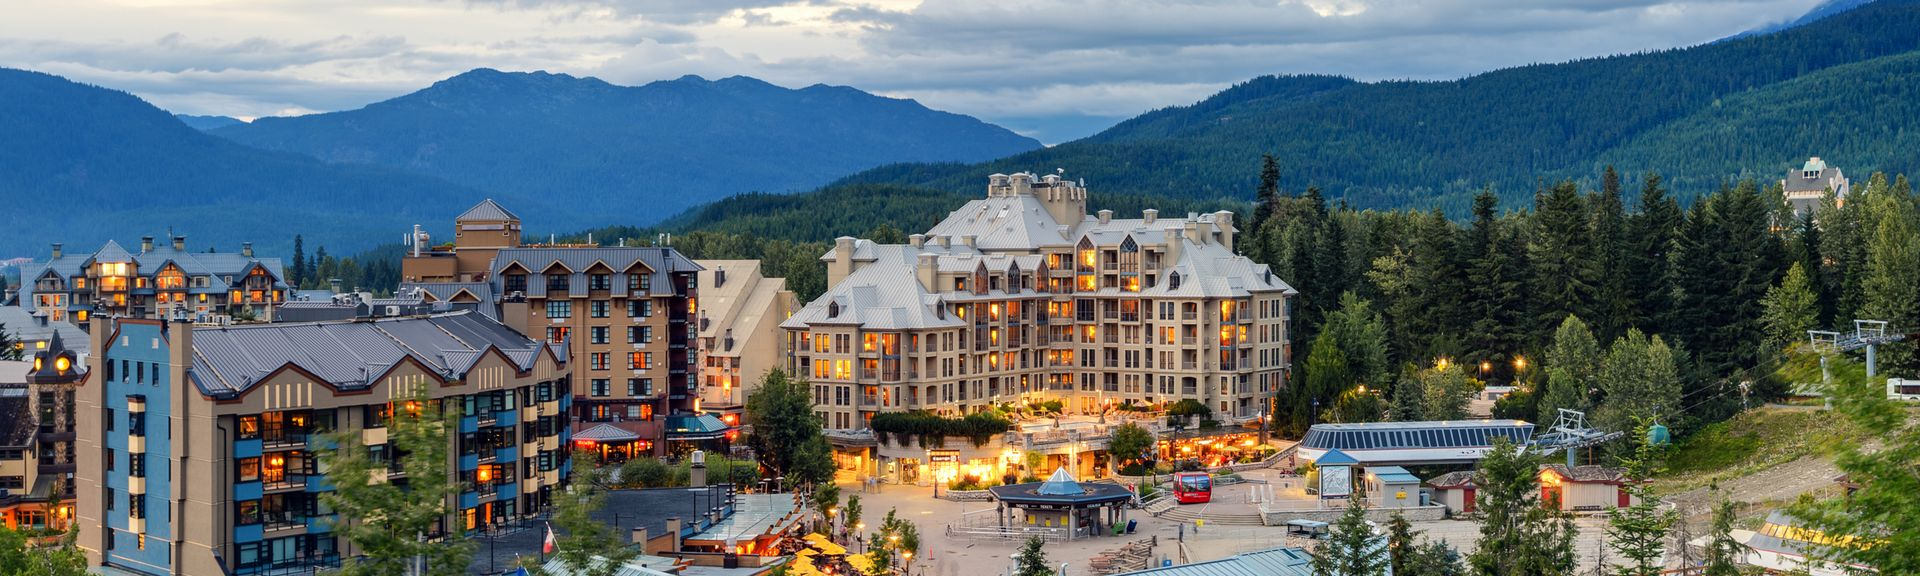 Upper Village, Whistler, Colombie-Britannique, Canada